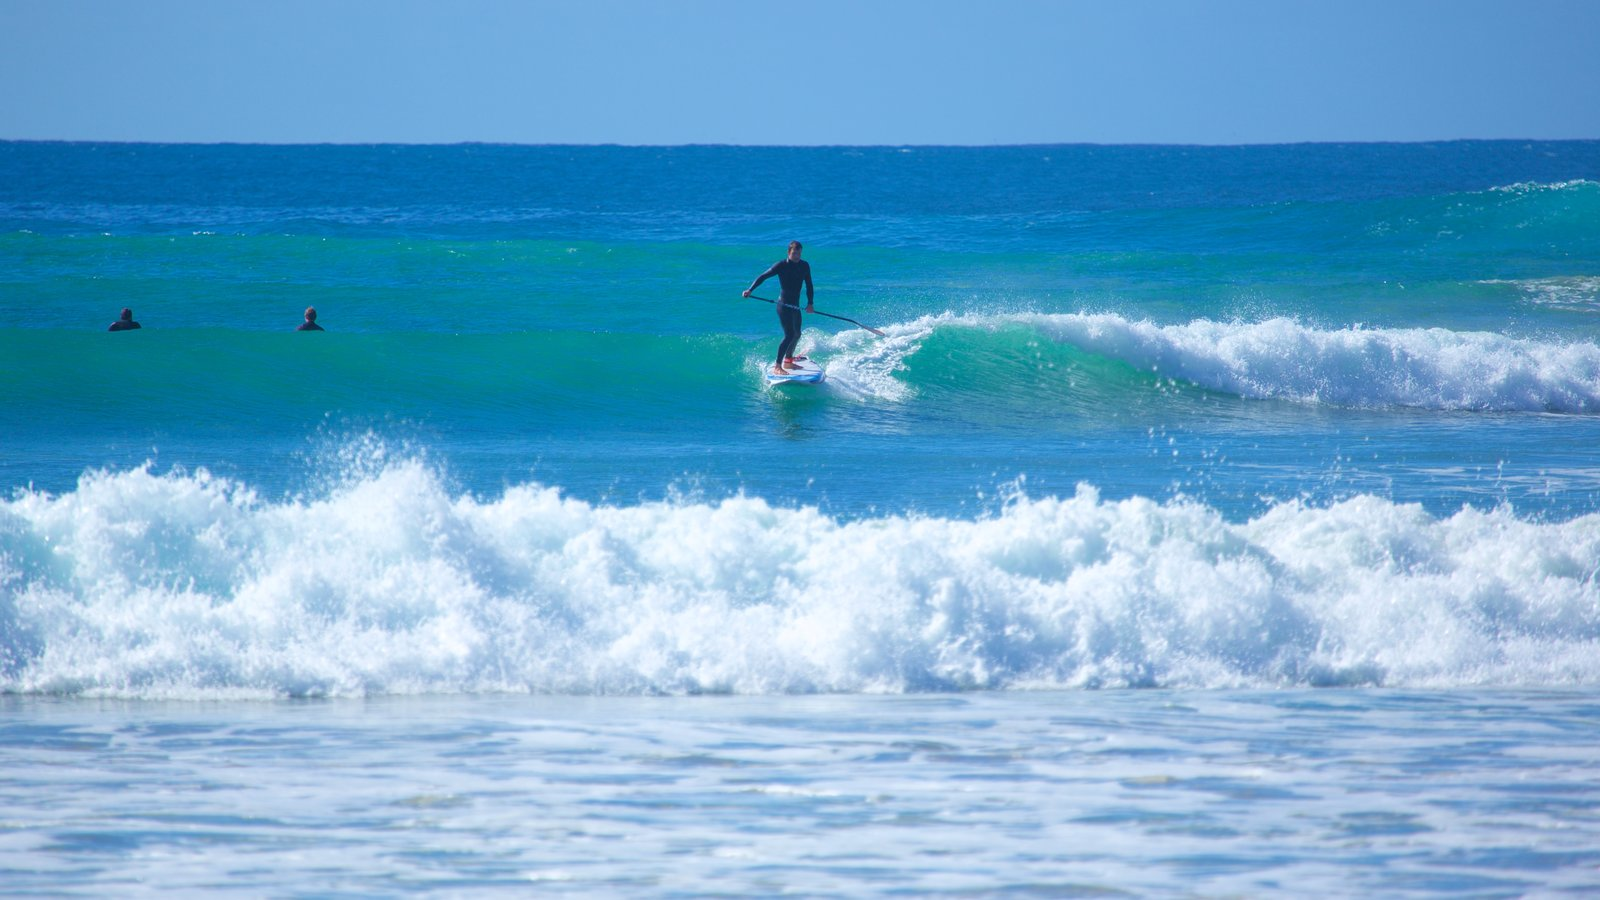 Great Ocean Road which includes surfing and waves as well as an individual male